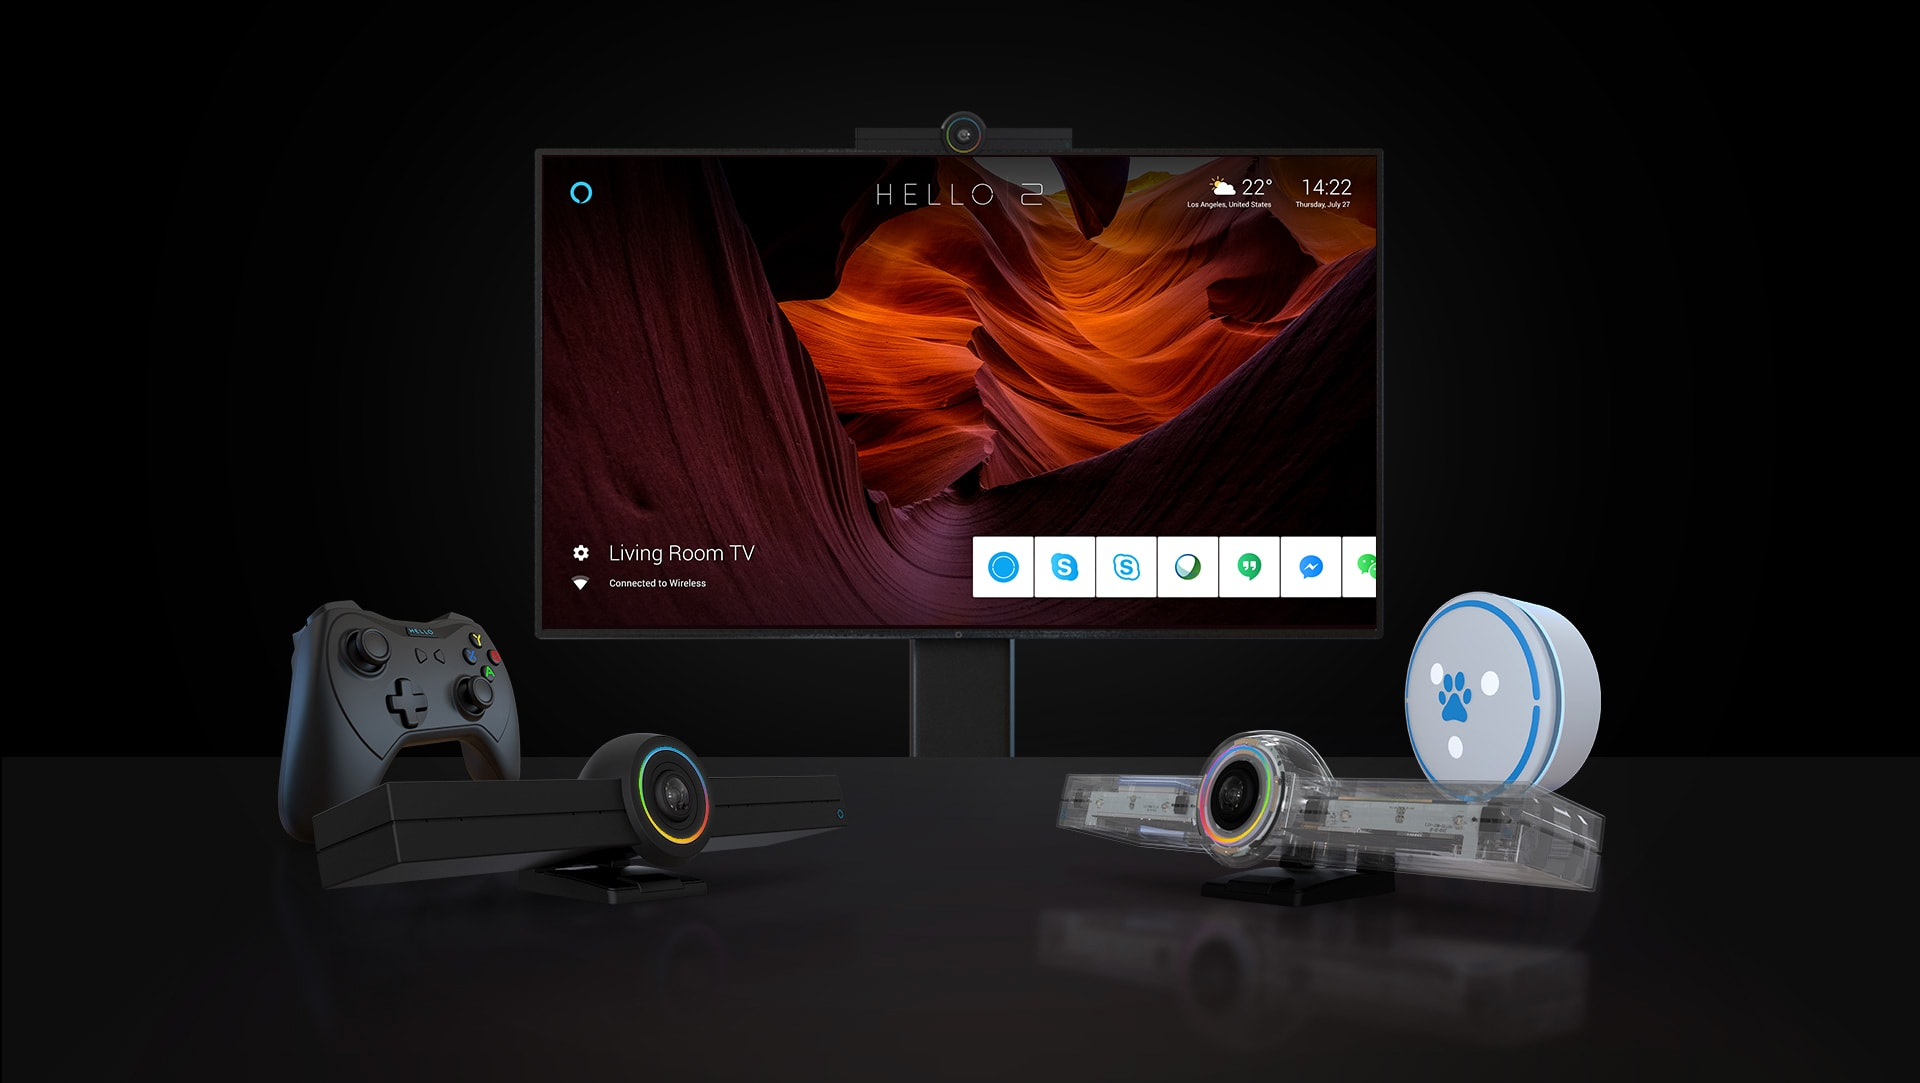 HELLO 2 — The World's Most Powerful Video Communication Device